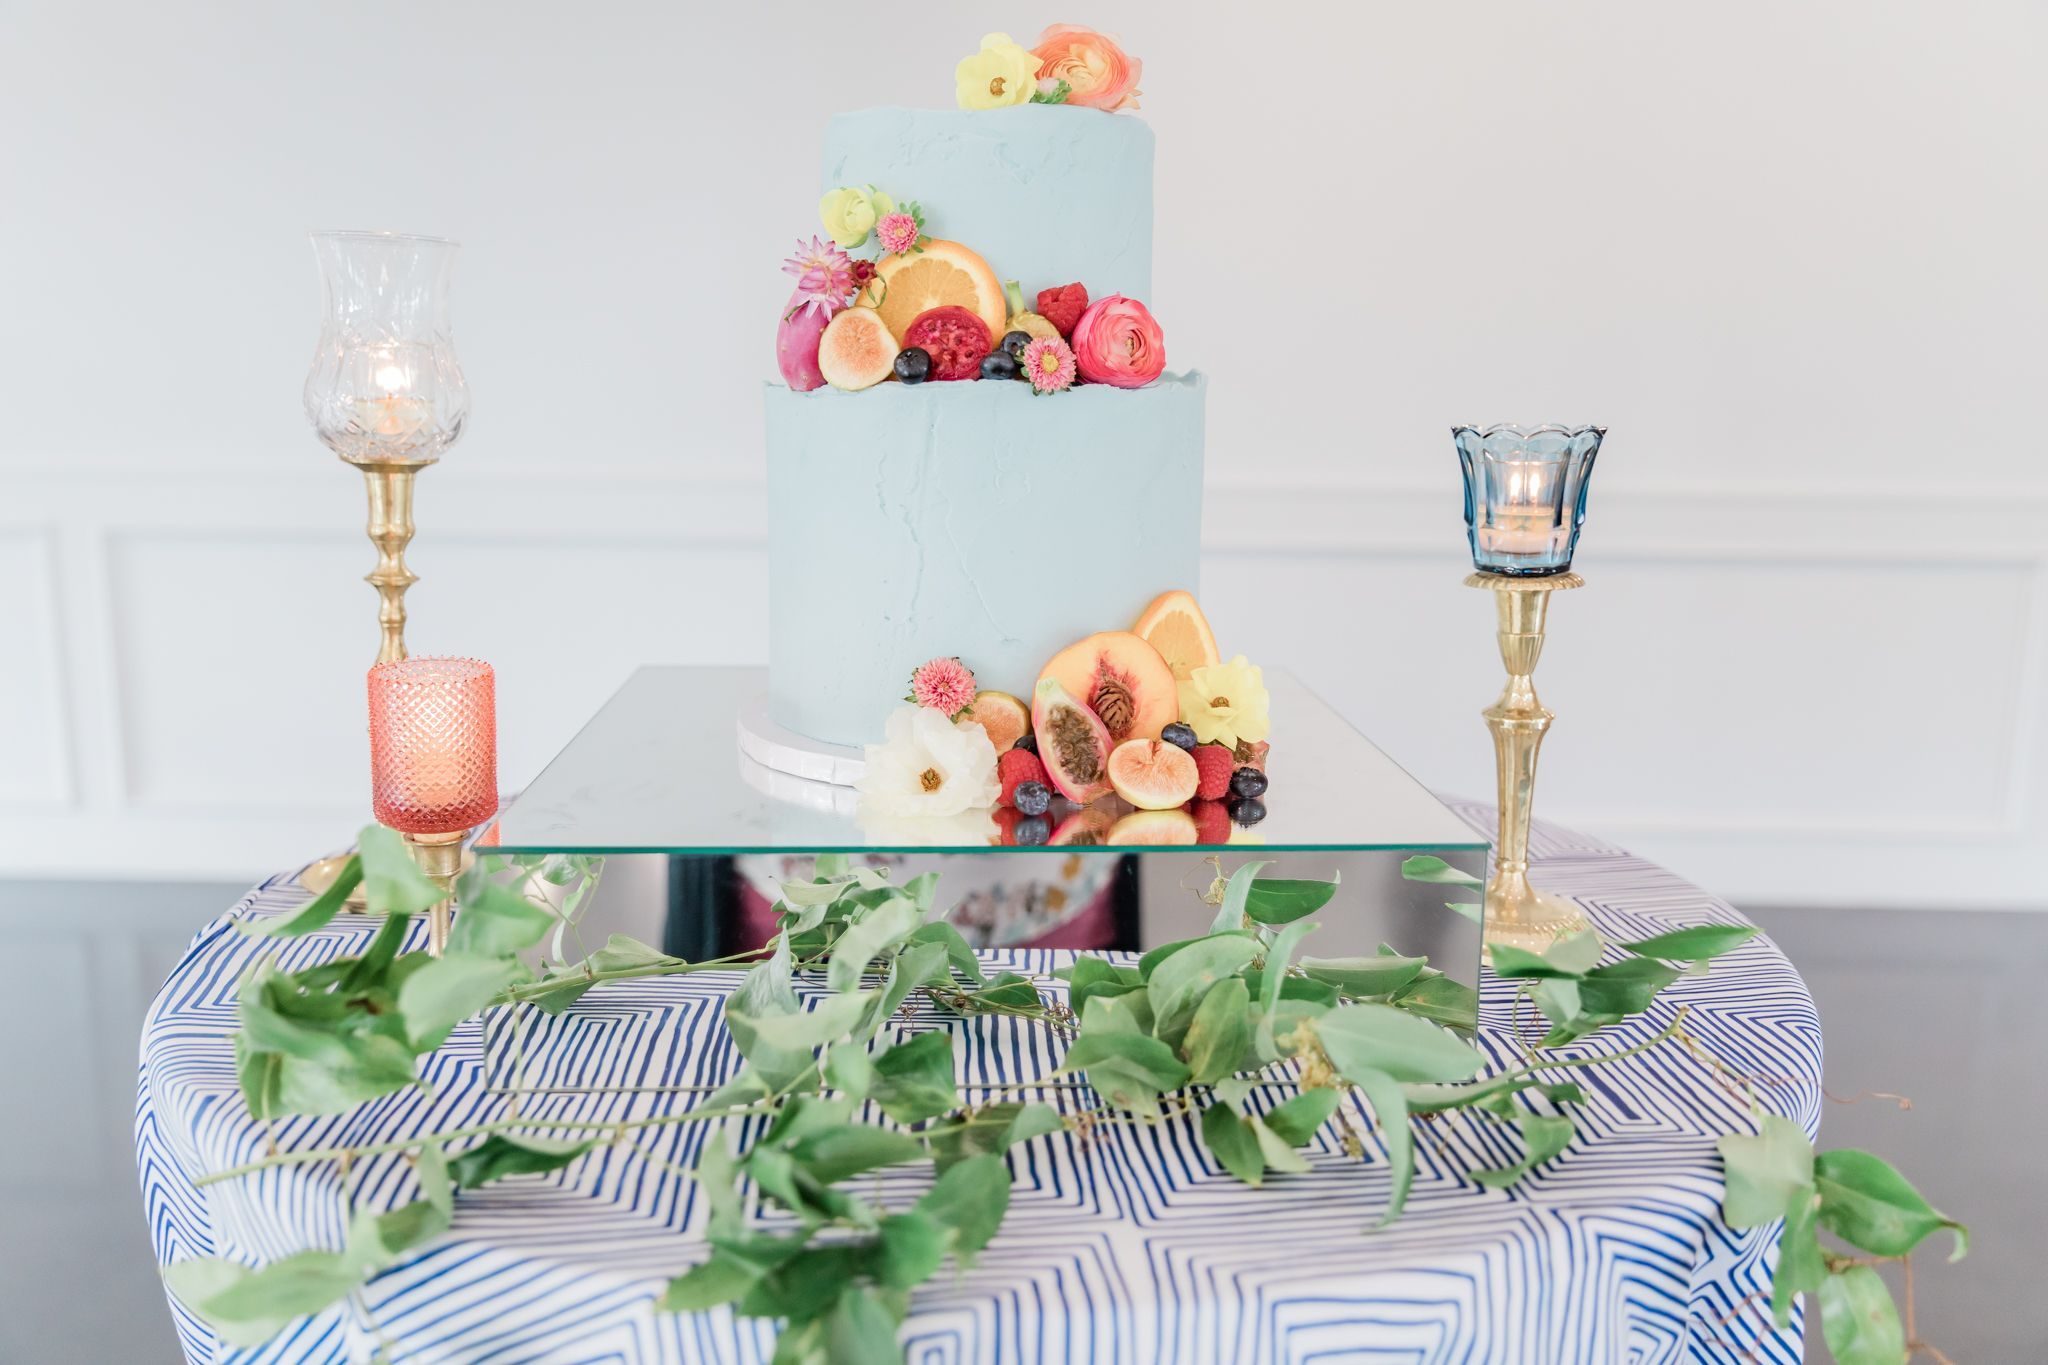 cake-decor-floral-fruit-wedding-weatherford